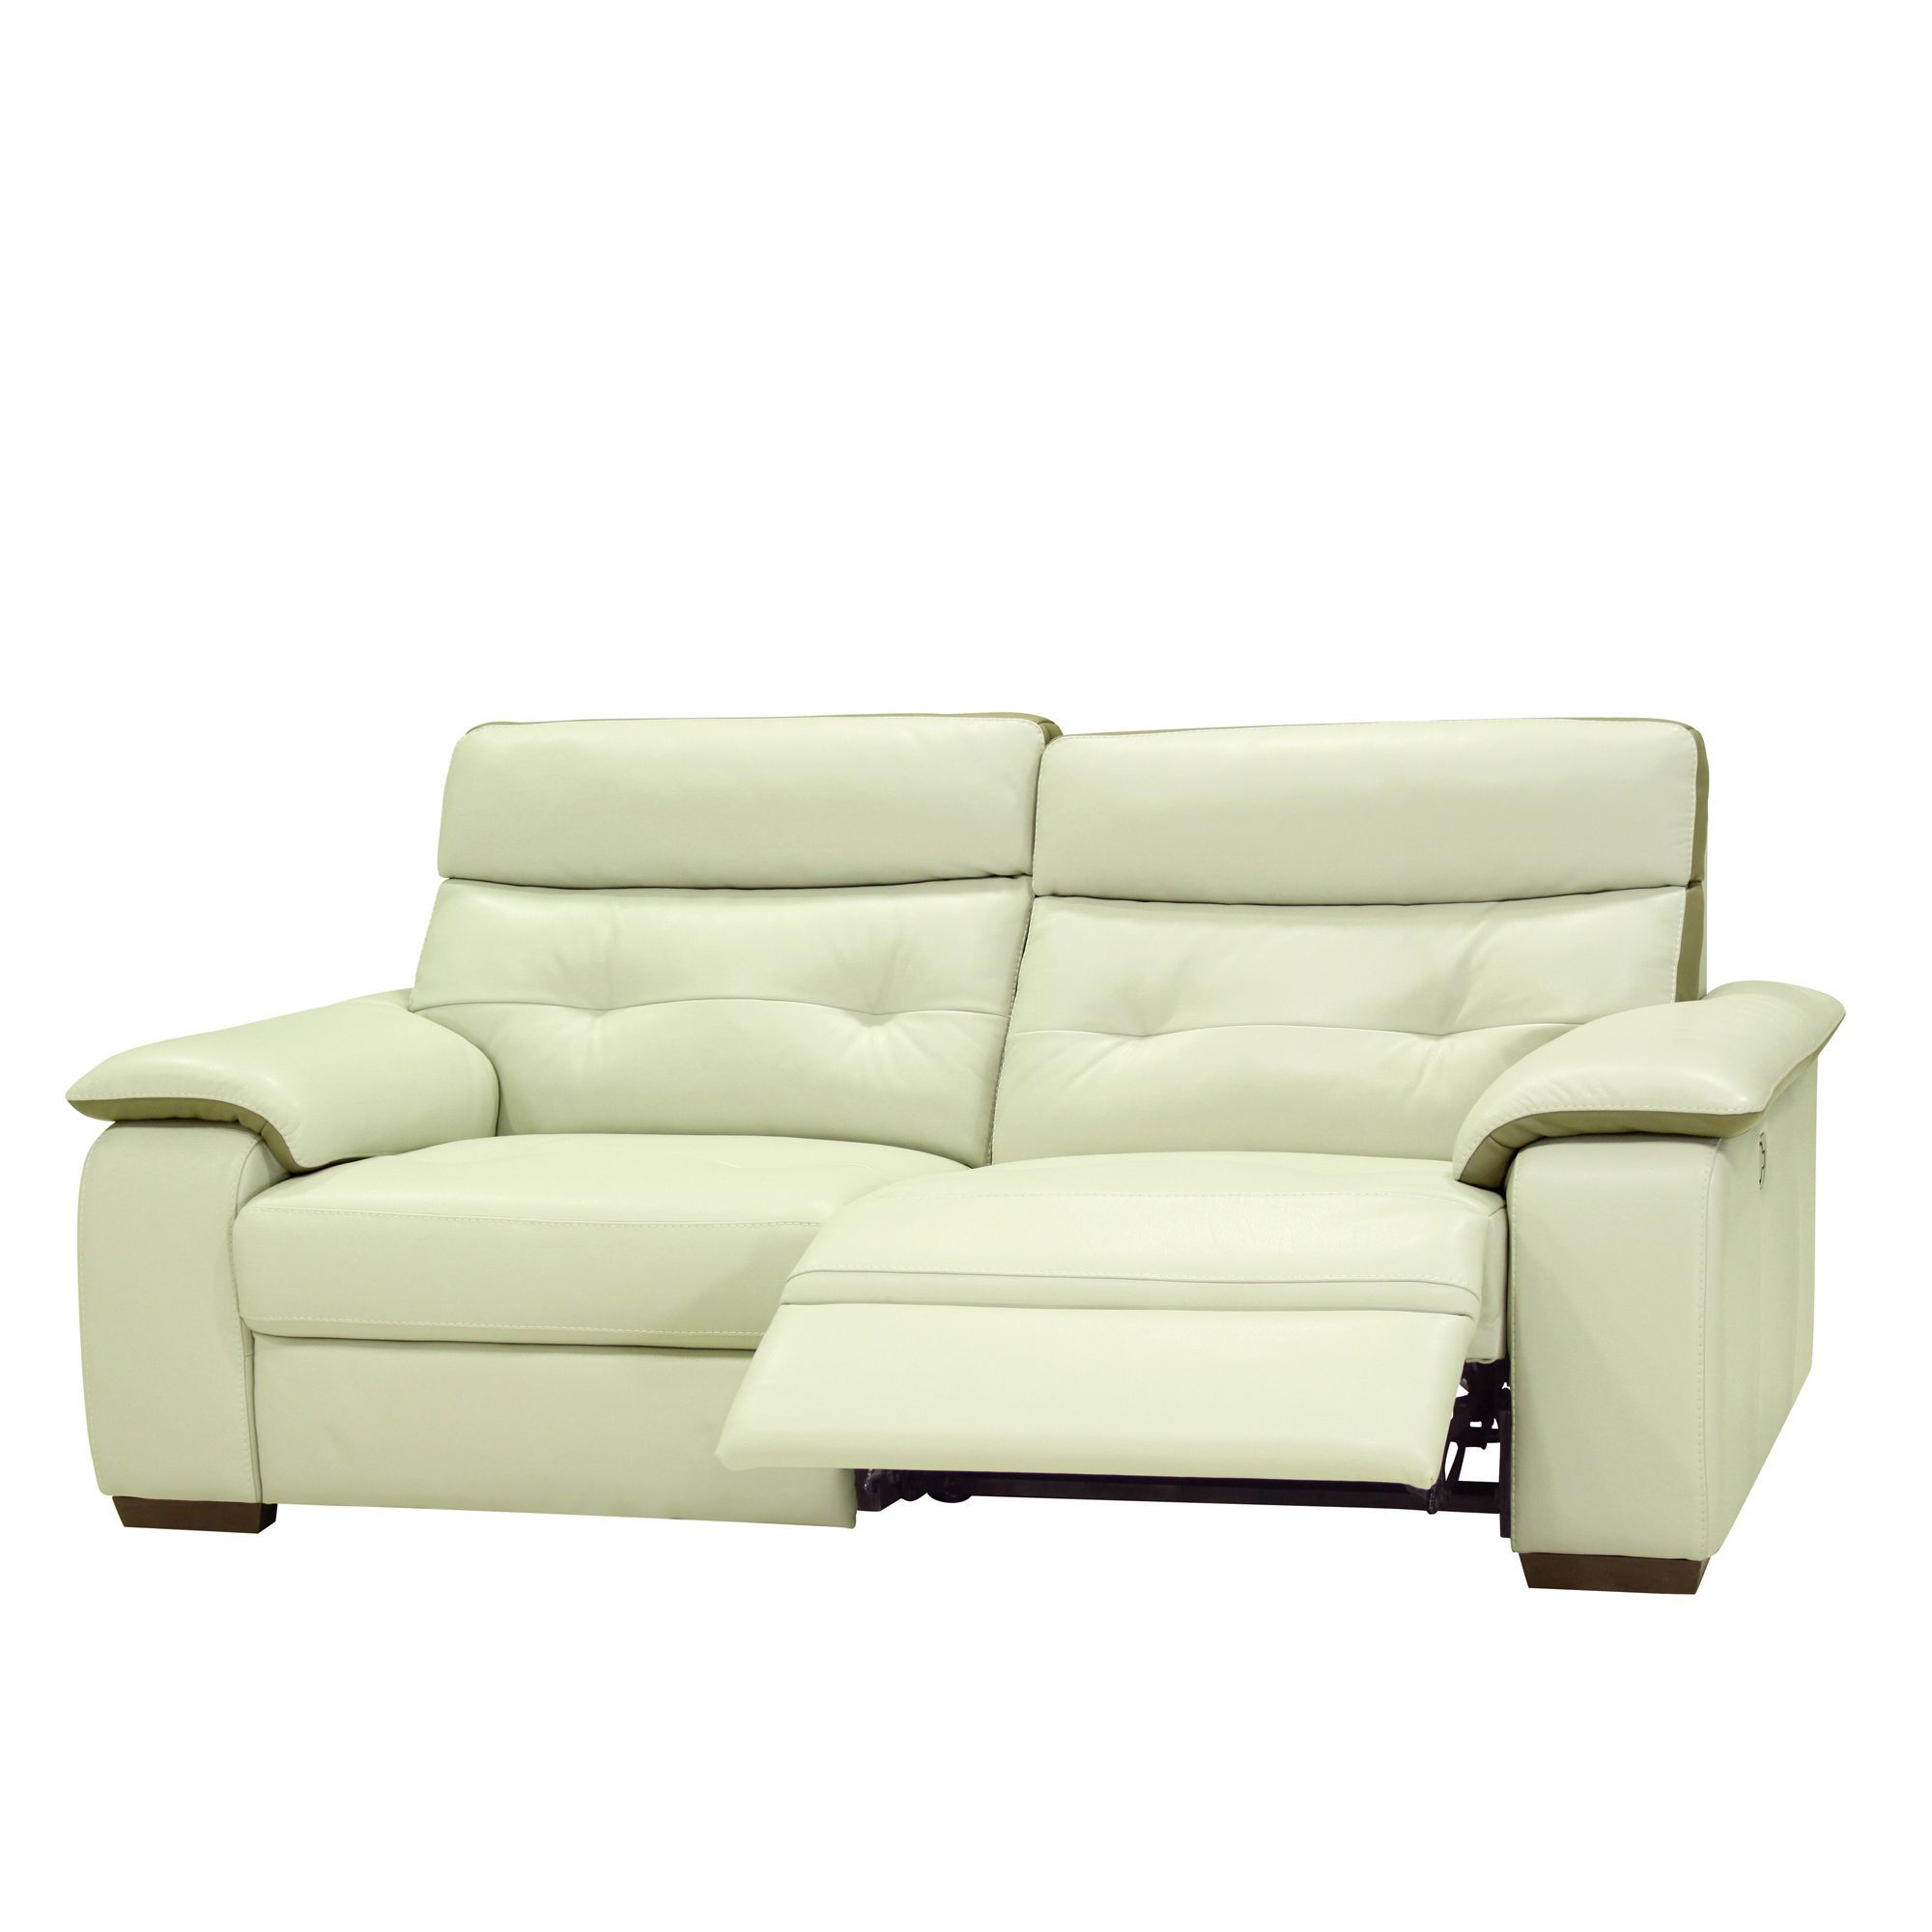 Cookes Collection Hobart 3 Seater Electric Recliner Sofa